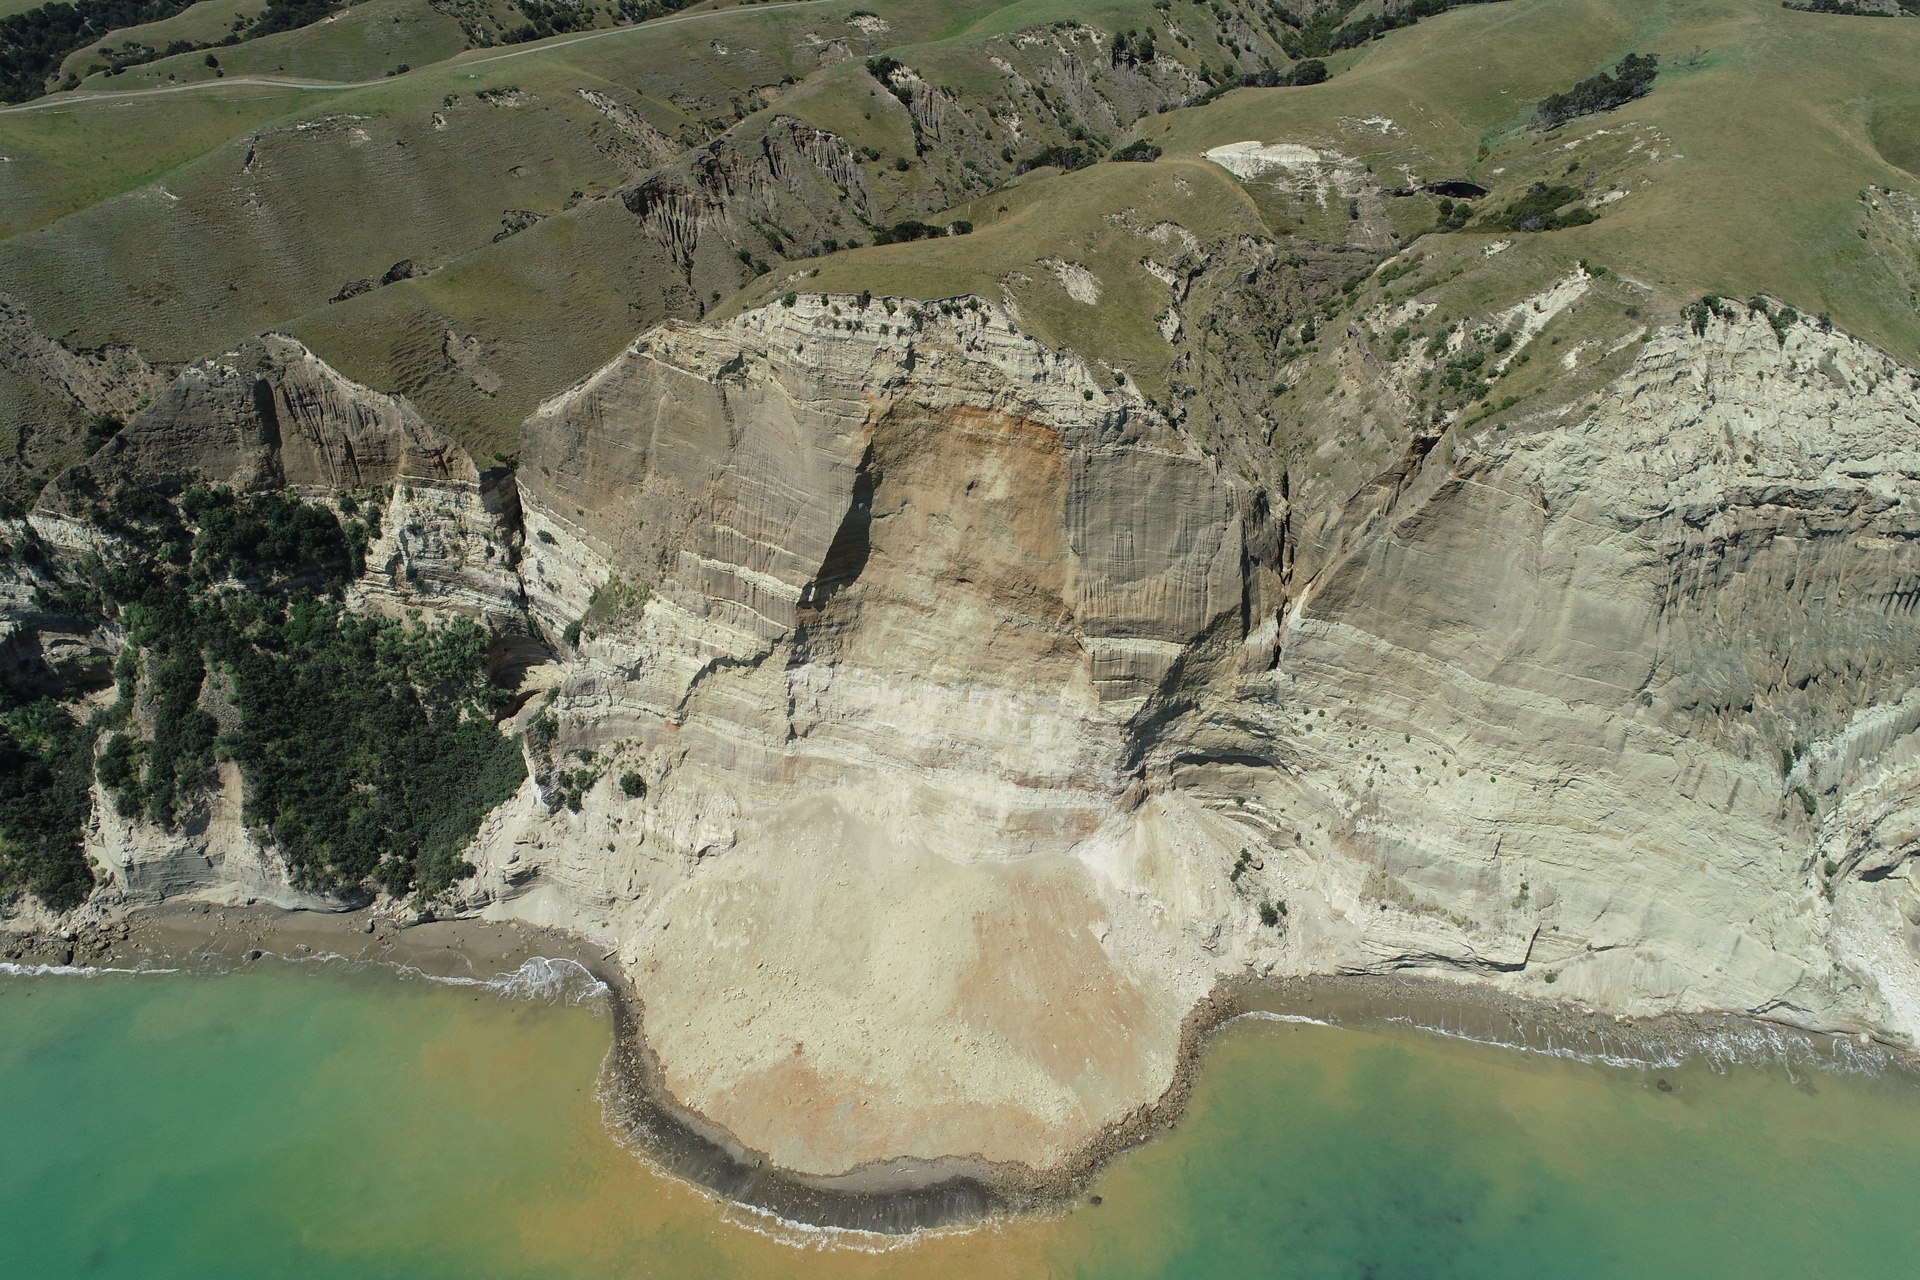 Another landslide delays Cape Kidnappers beach access opening